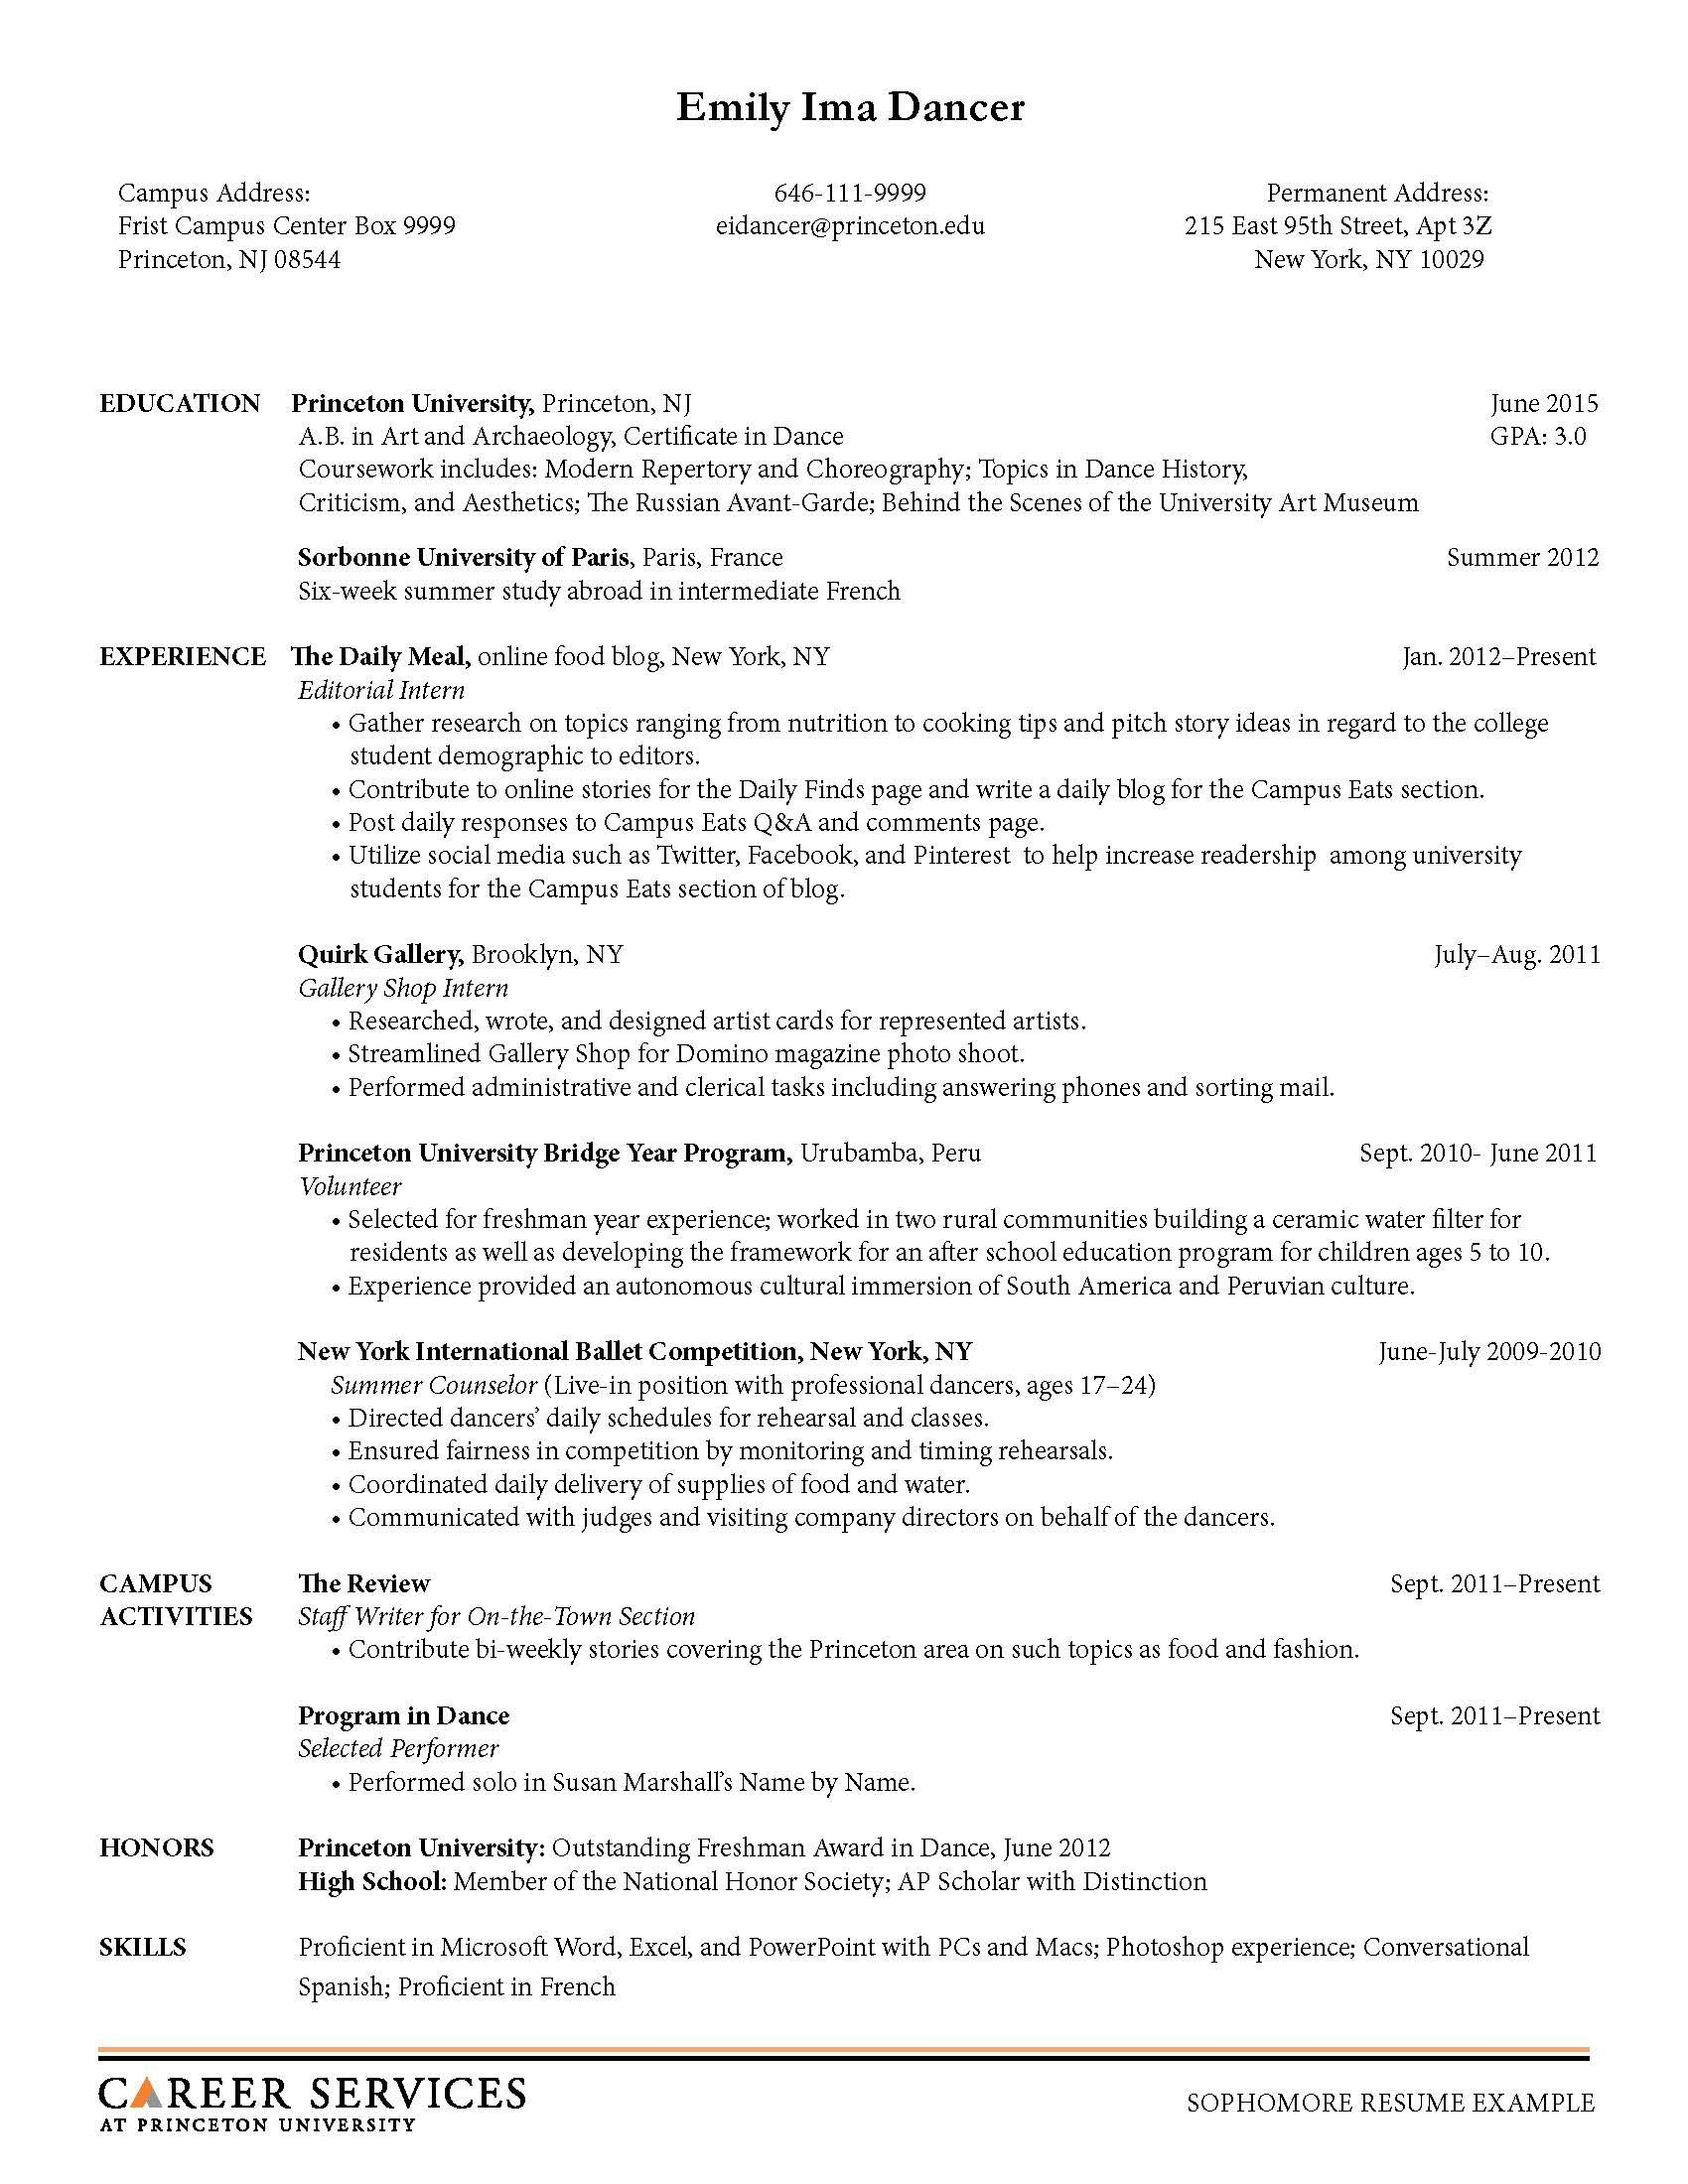 Picnictoimpeachus  Marvelous Sample Resume Resume And Career On Pinterest With Licious Communications Specialist Resume Besides Resume Qualities Furthermore Security Clearance On Resume With Enchanting Best Administrative Assistant Resume Also Counseling Resume In Addition Salesforce Developer Resume And Sample Cover Letter For A Resume As Well As Resume Service Phoenix Additionally Resume Templates Latex From Pinterestcom With Picnictoimpeachus  Licious Sample Resume Resume And Career On Pinterest With Enchanting Communications Specialist Resume Besides Resume Qualities Furthermore Security Clearance On Resume And Marvelous Best Administrative Assistant Resume Also Counseling Resume In Addition Salesforce Developer Resume From Pinterestcom